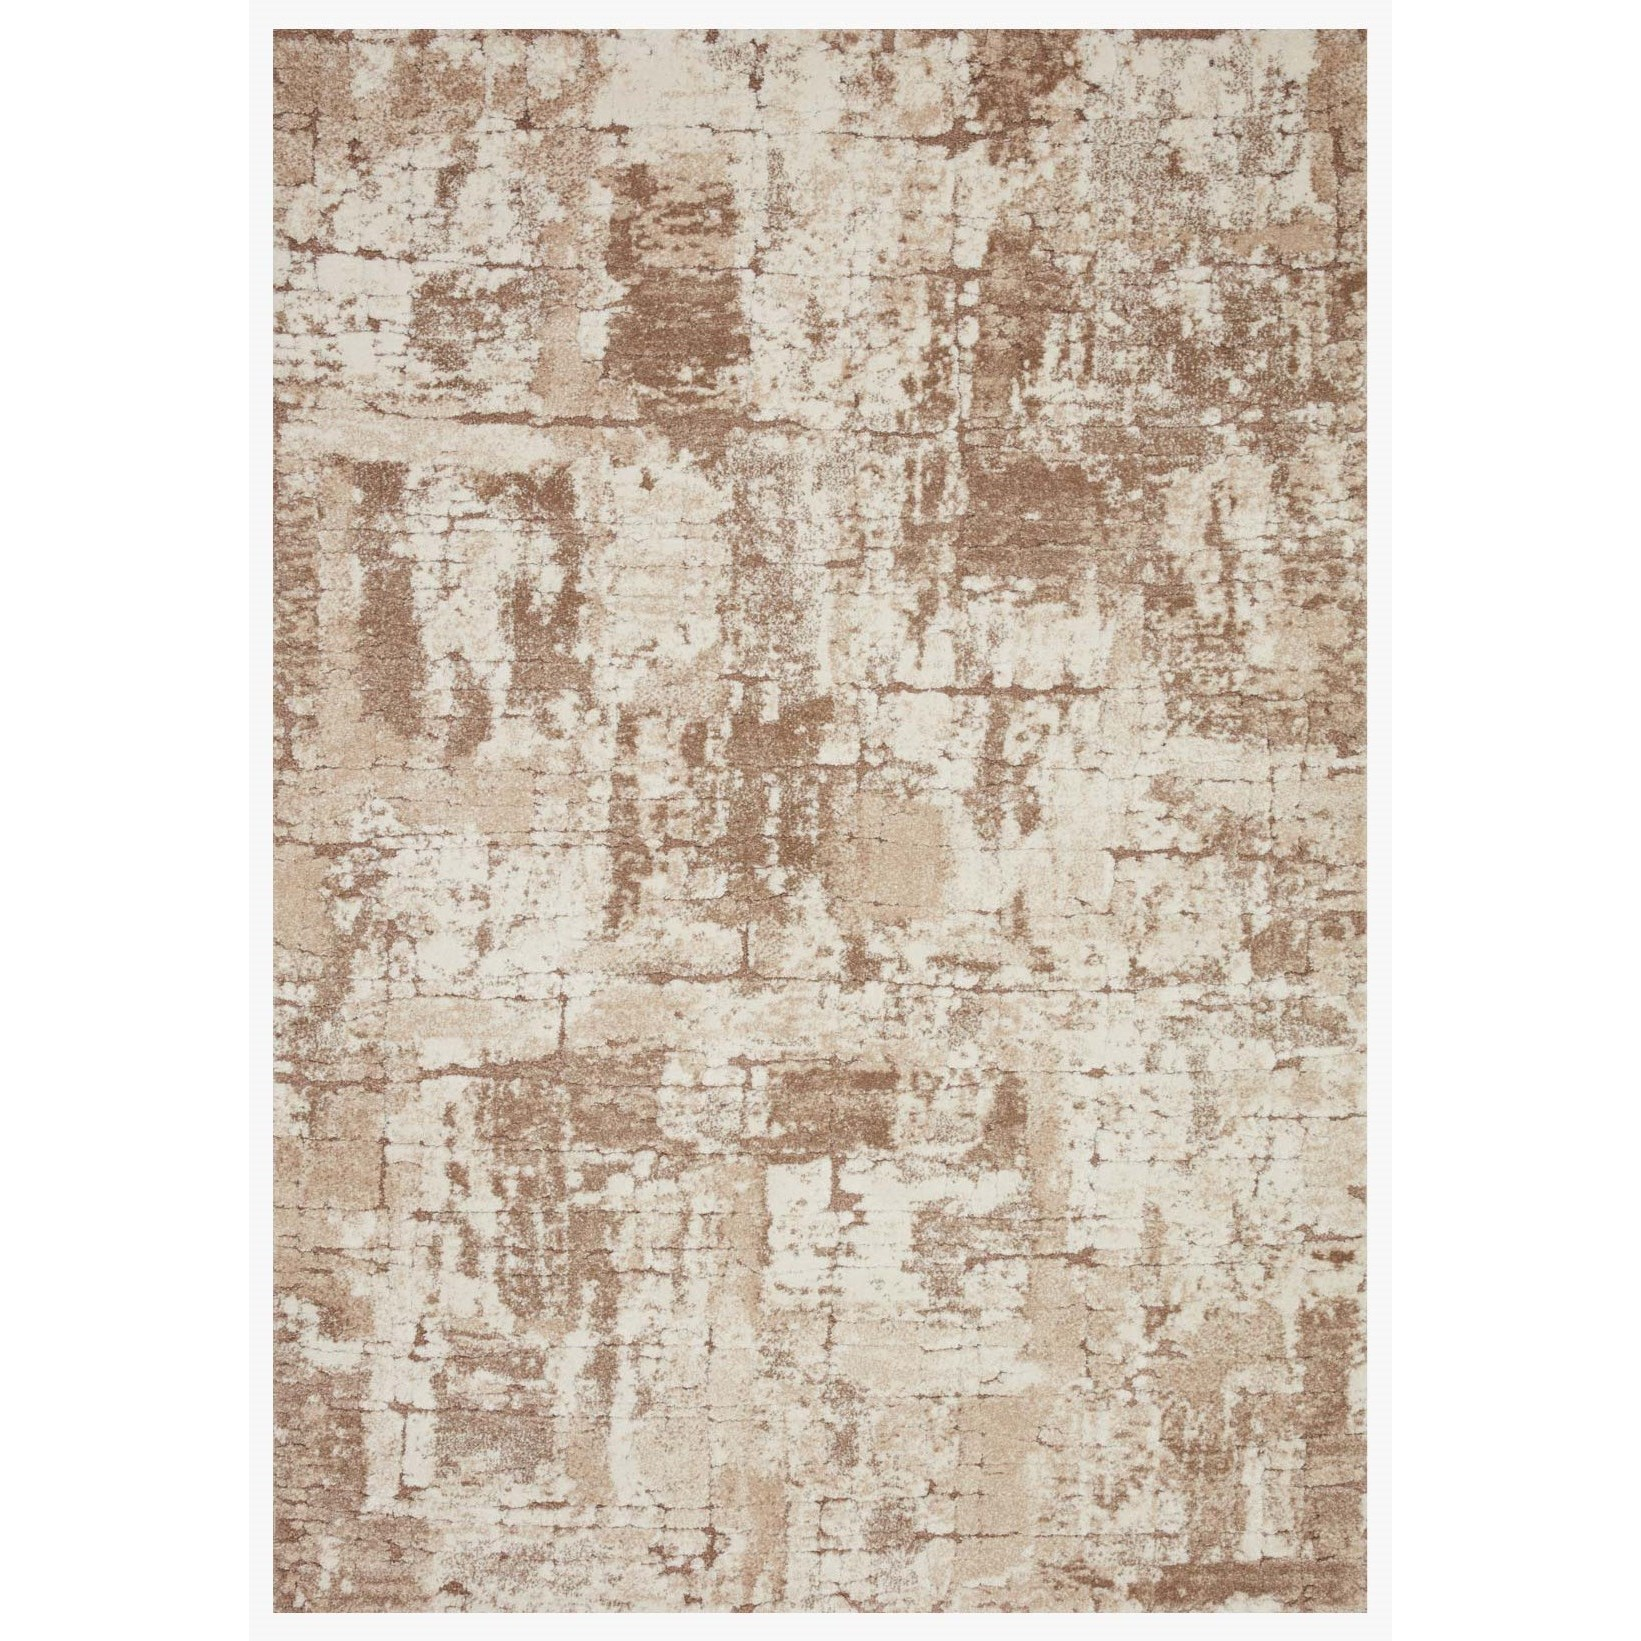 """Theory 18"""" x 18""""  Beige / Taupe Rug by Loloi Rugs at Sprintz Furniture"""